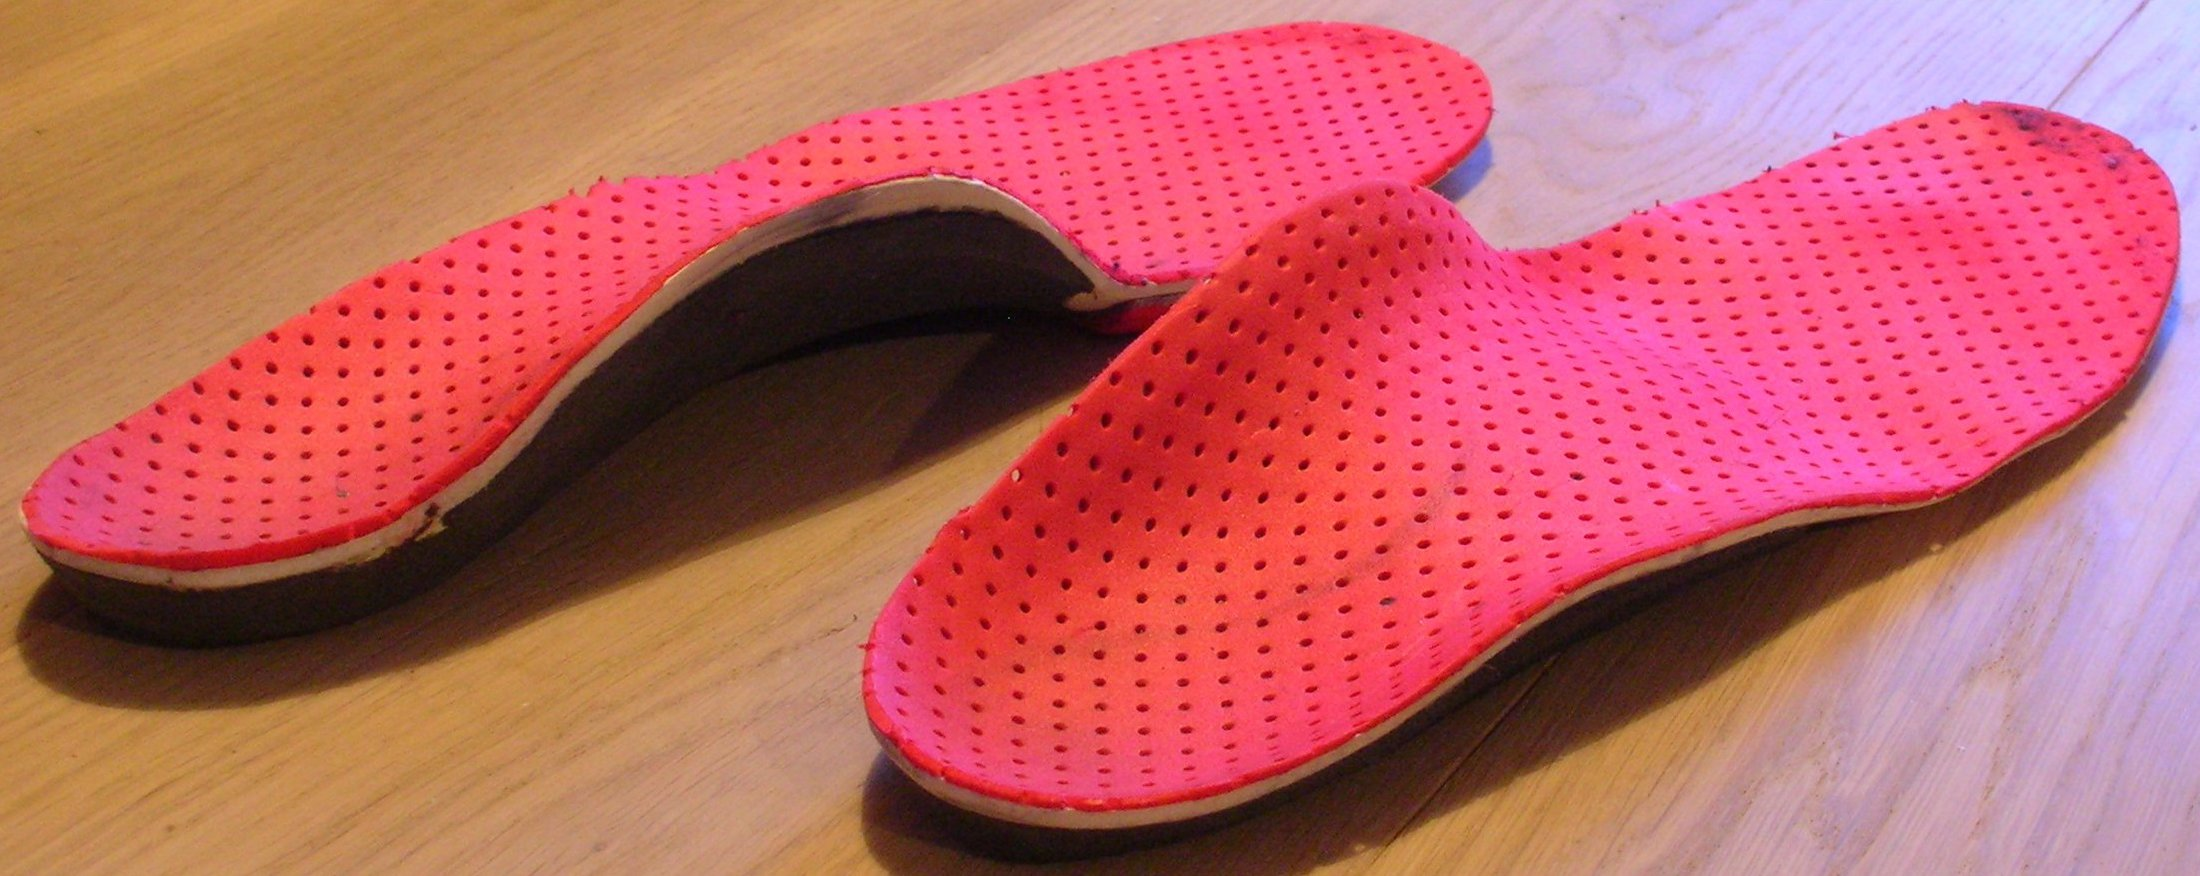 Orthotics May Relieve Chronic Back Pain